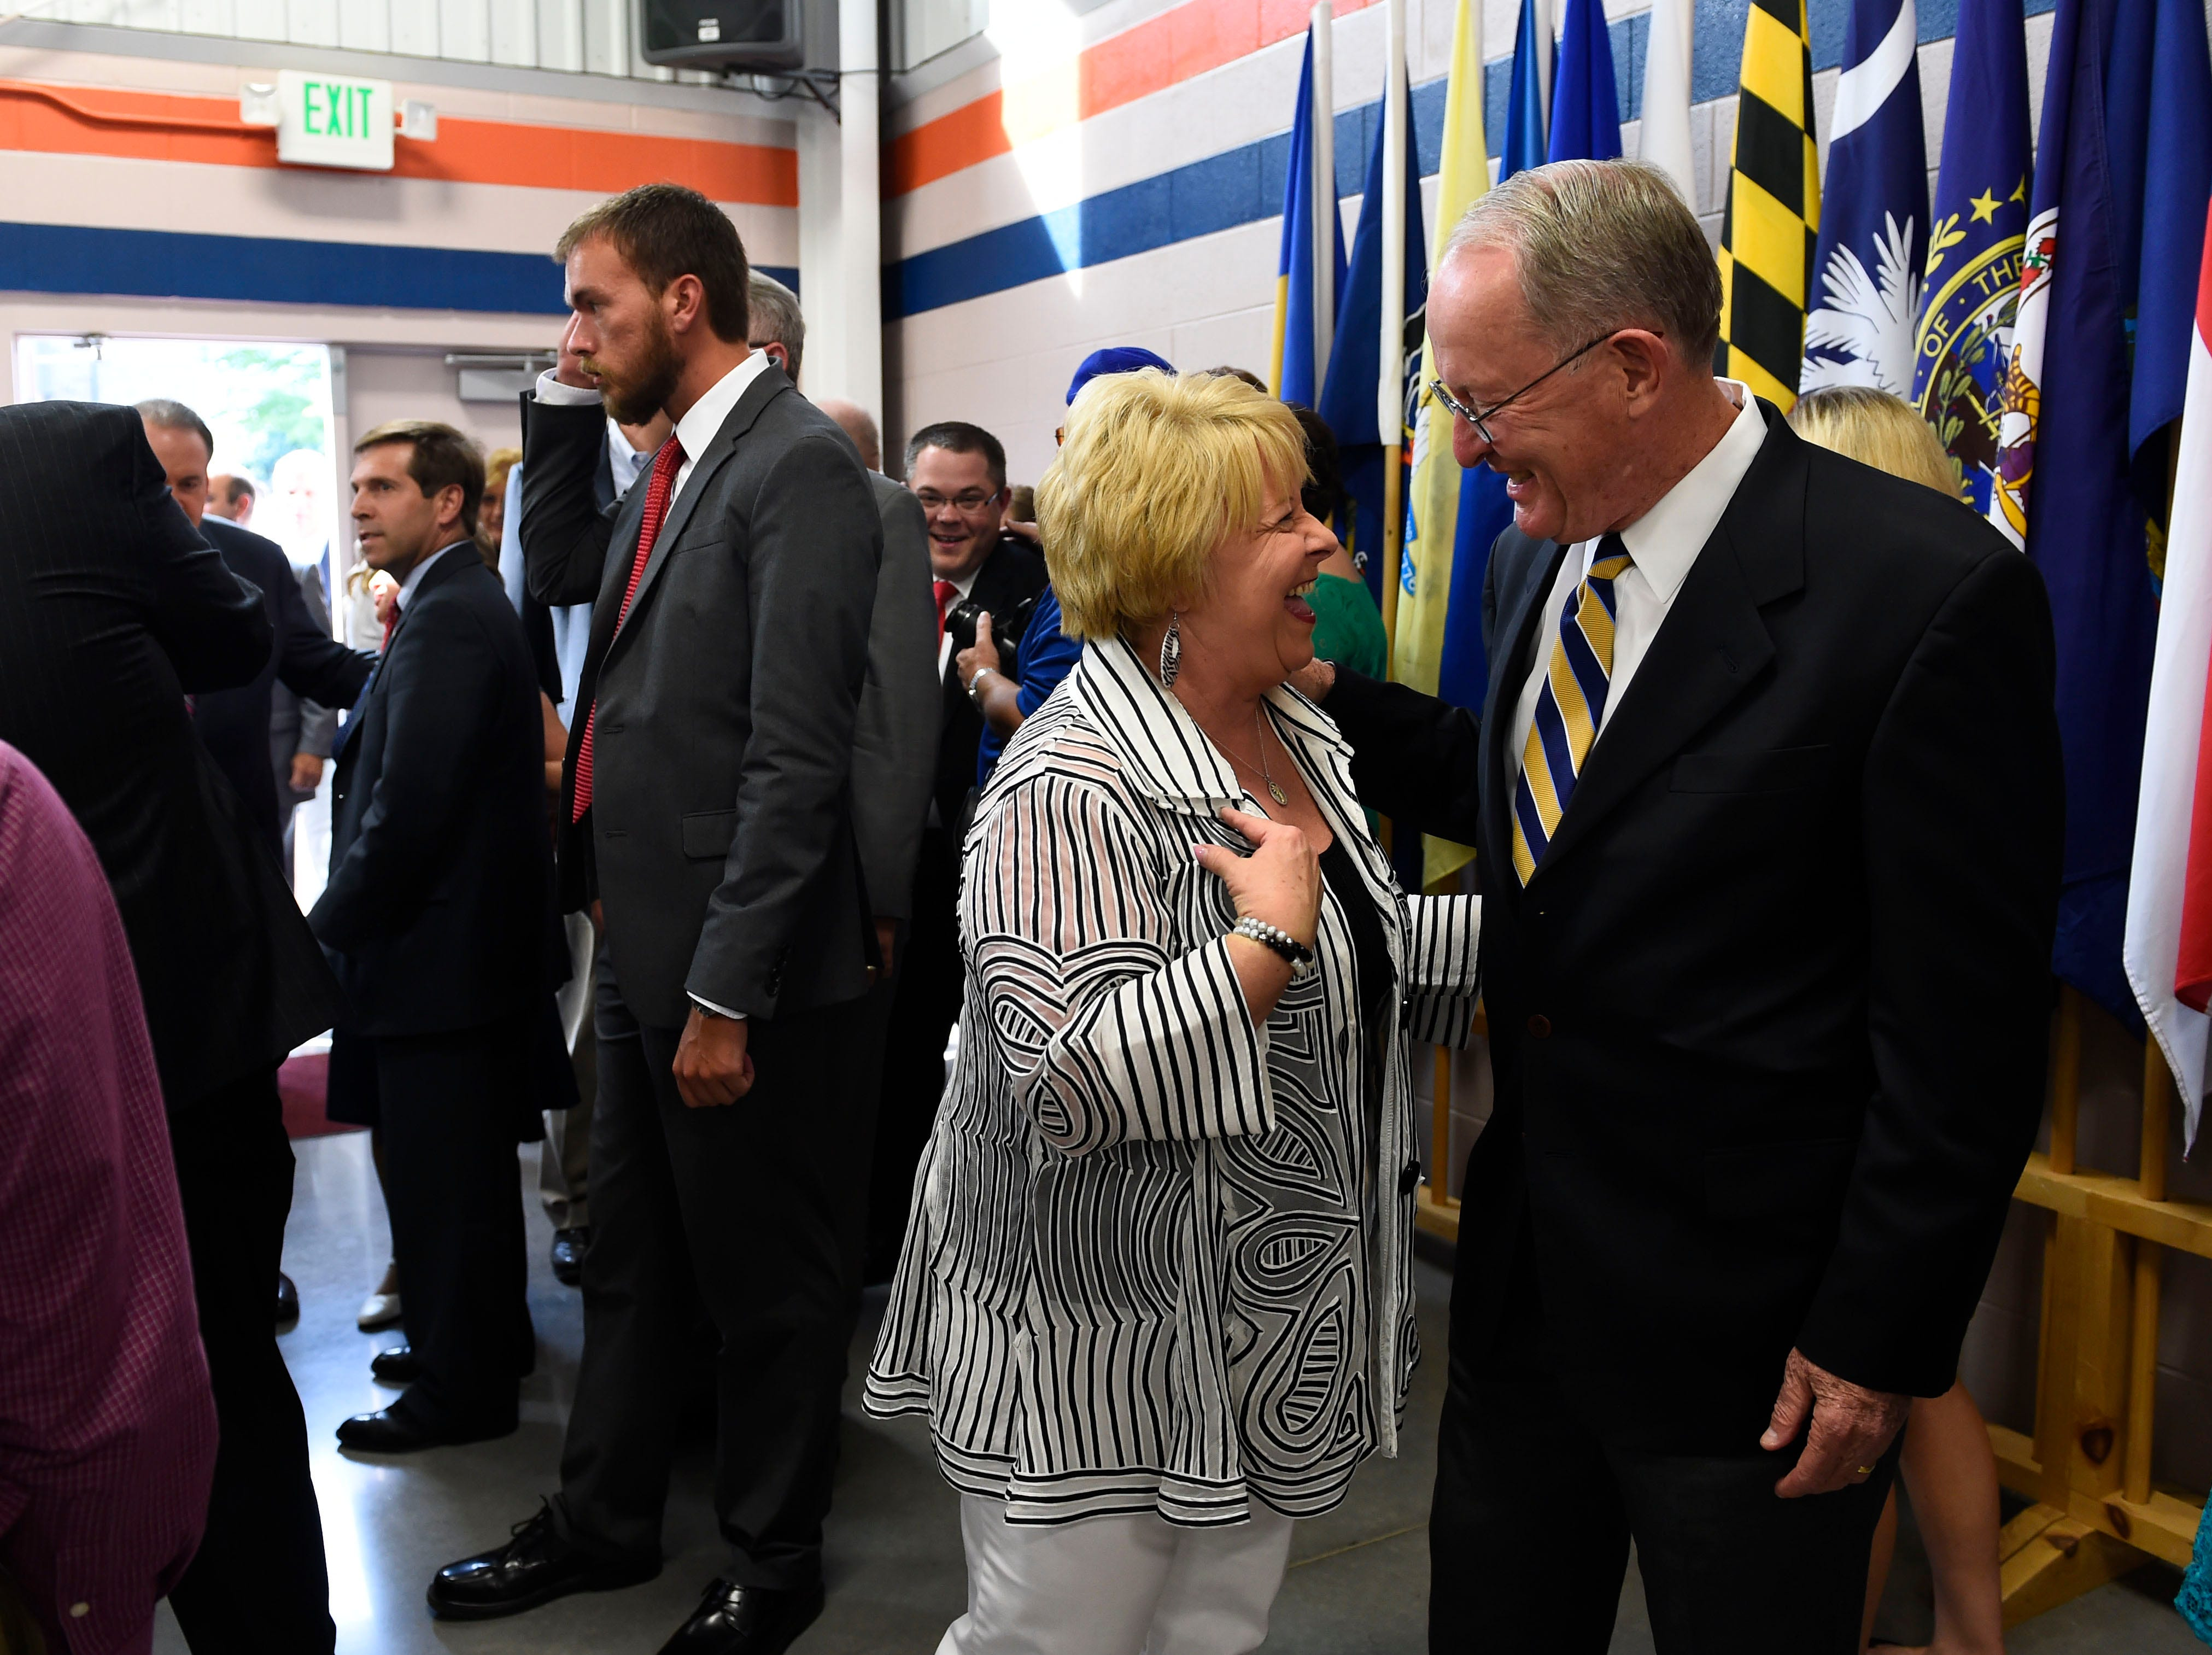 Ann Ayers greets U.S. Sen. Lamar Alexander during the Lincoln Reagan Dinner at Campbell County High School in LaFollette, Saturday, July 12, 2014.